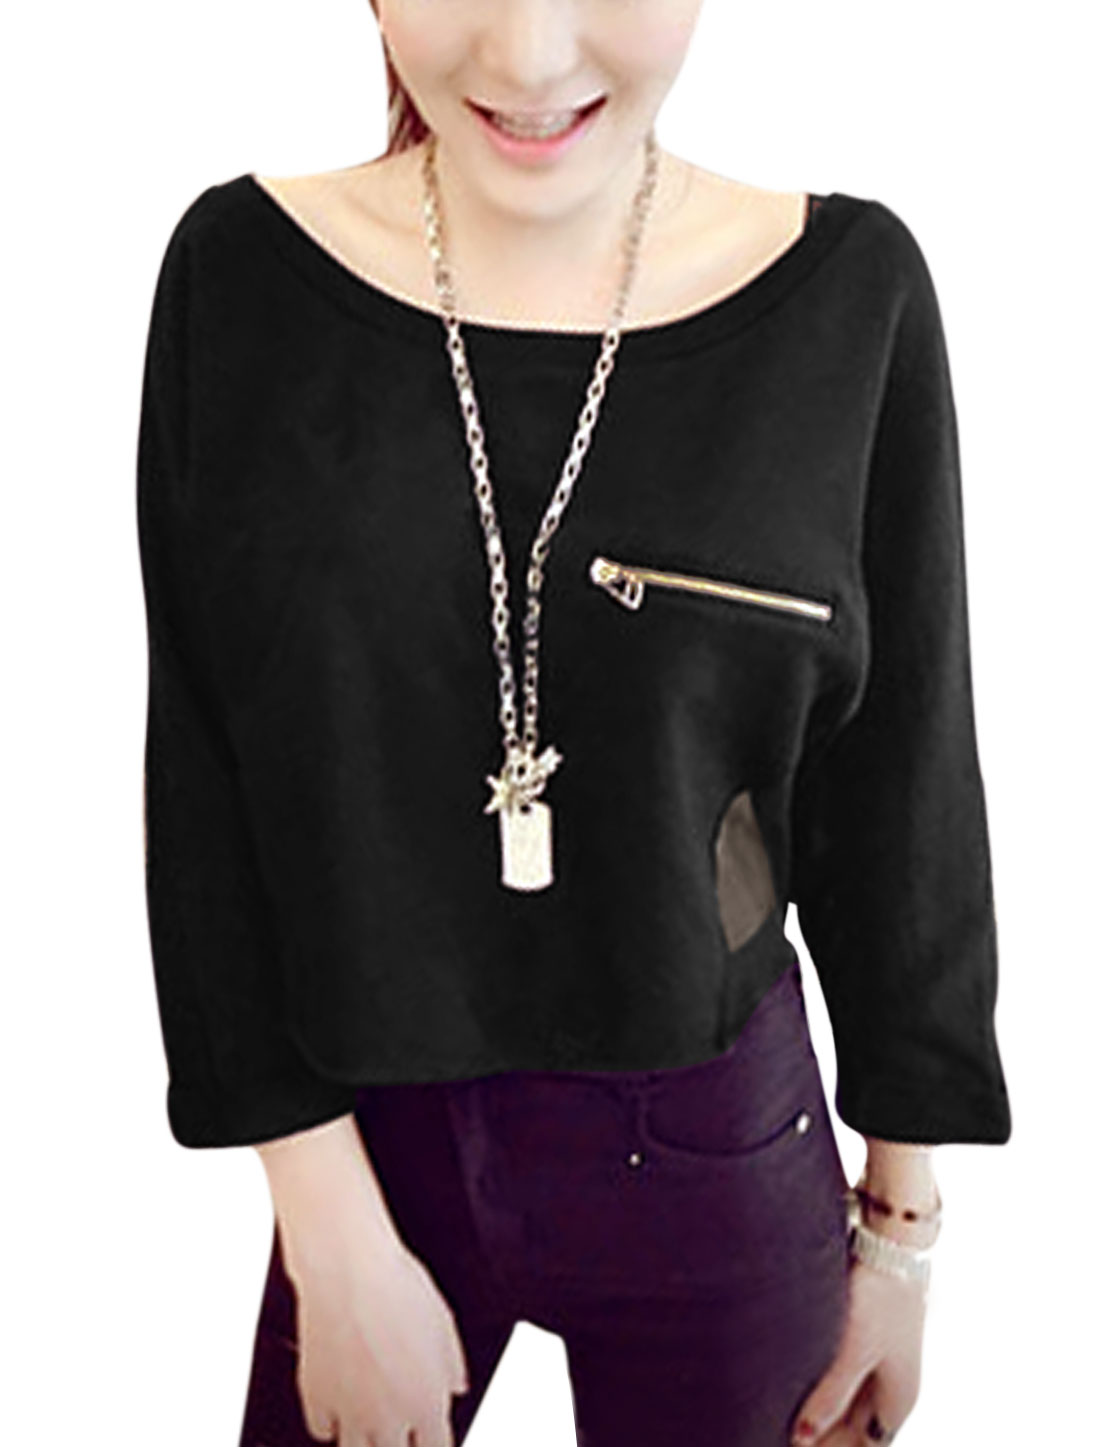 Women Round Neck 3/4 Sleeve Chiffon Spliced Slipover Stylish Shirt Black XS